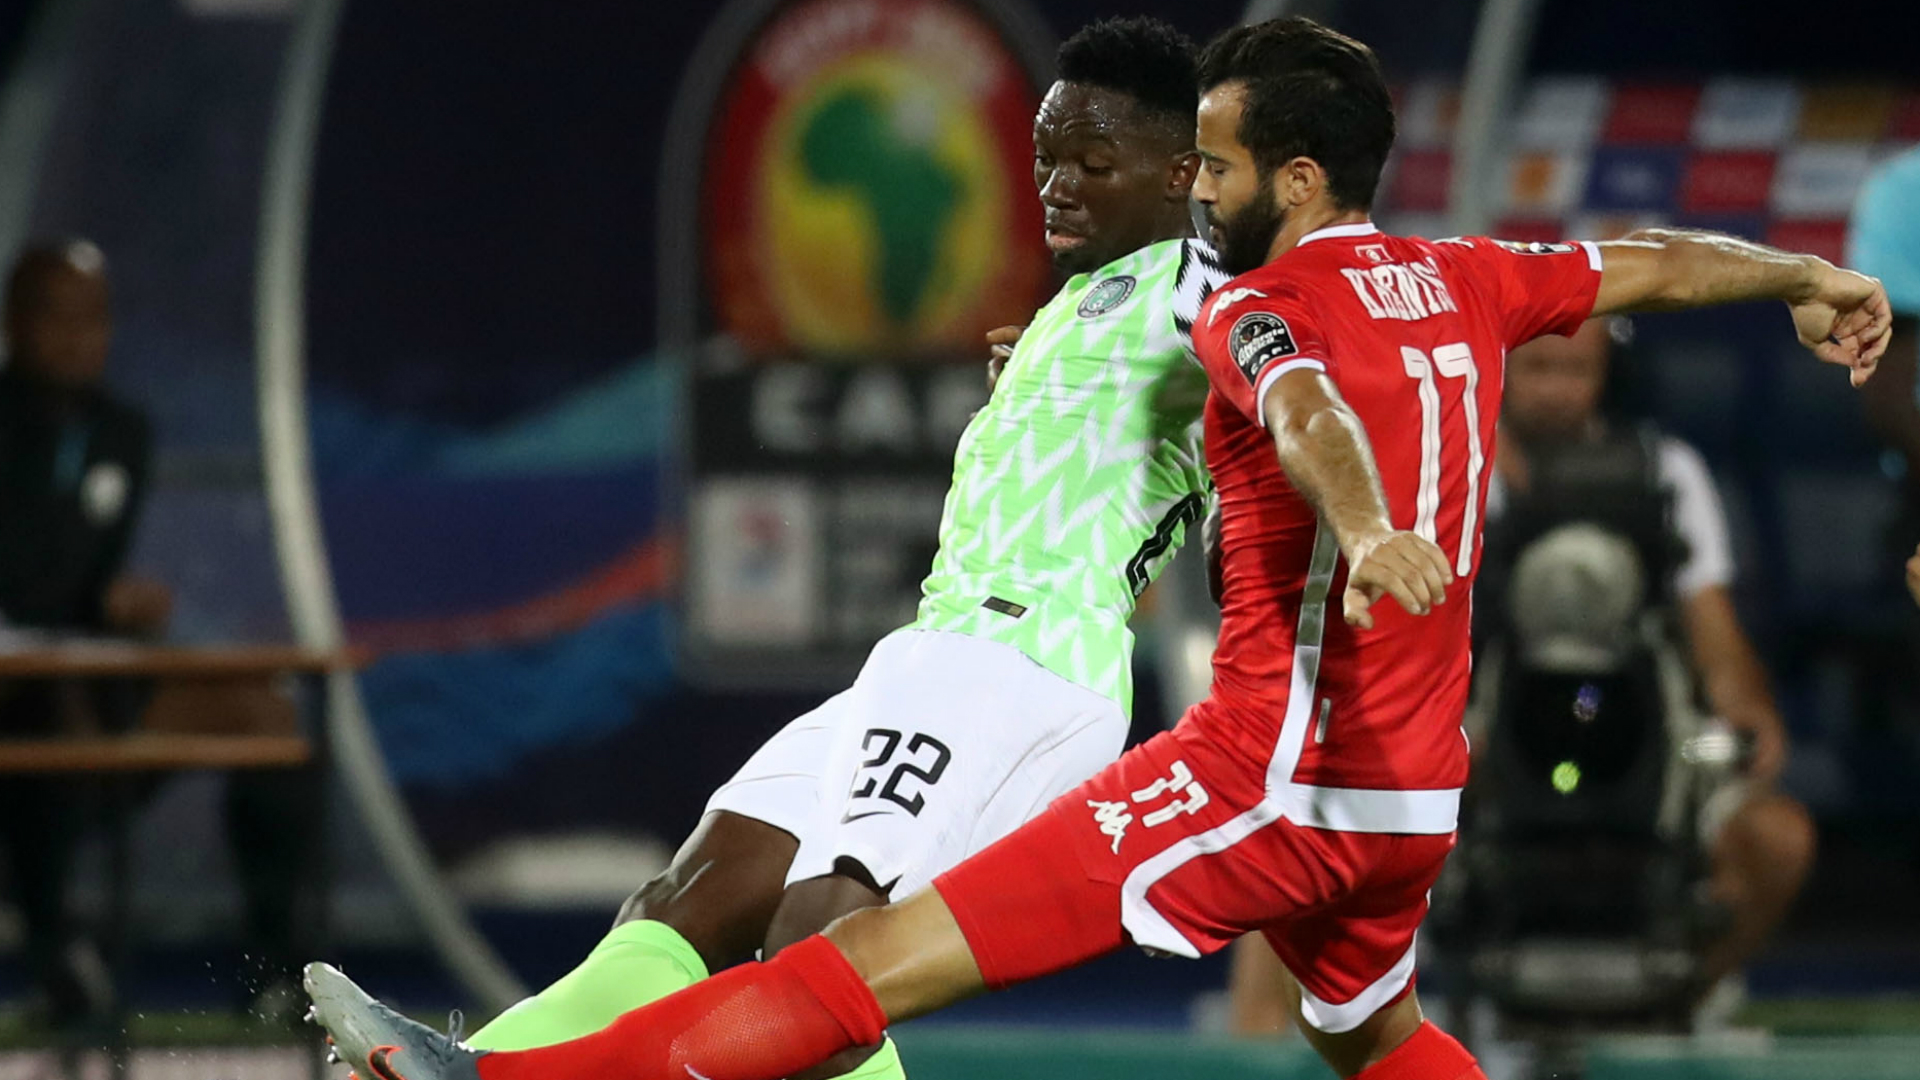 Afcon 2019: Tunisia 0-1 Nigeria - By The Numbers